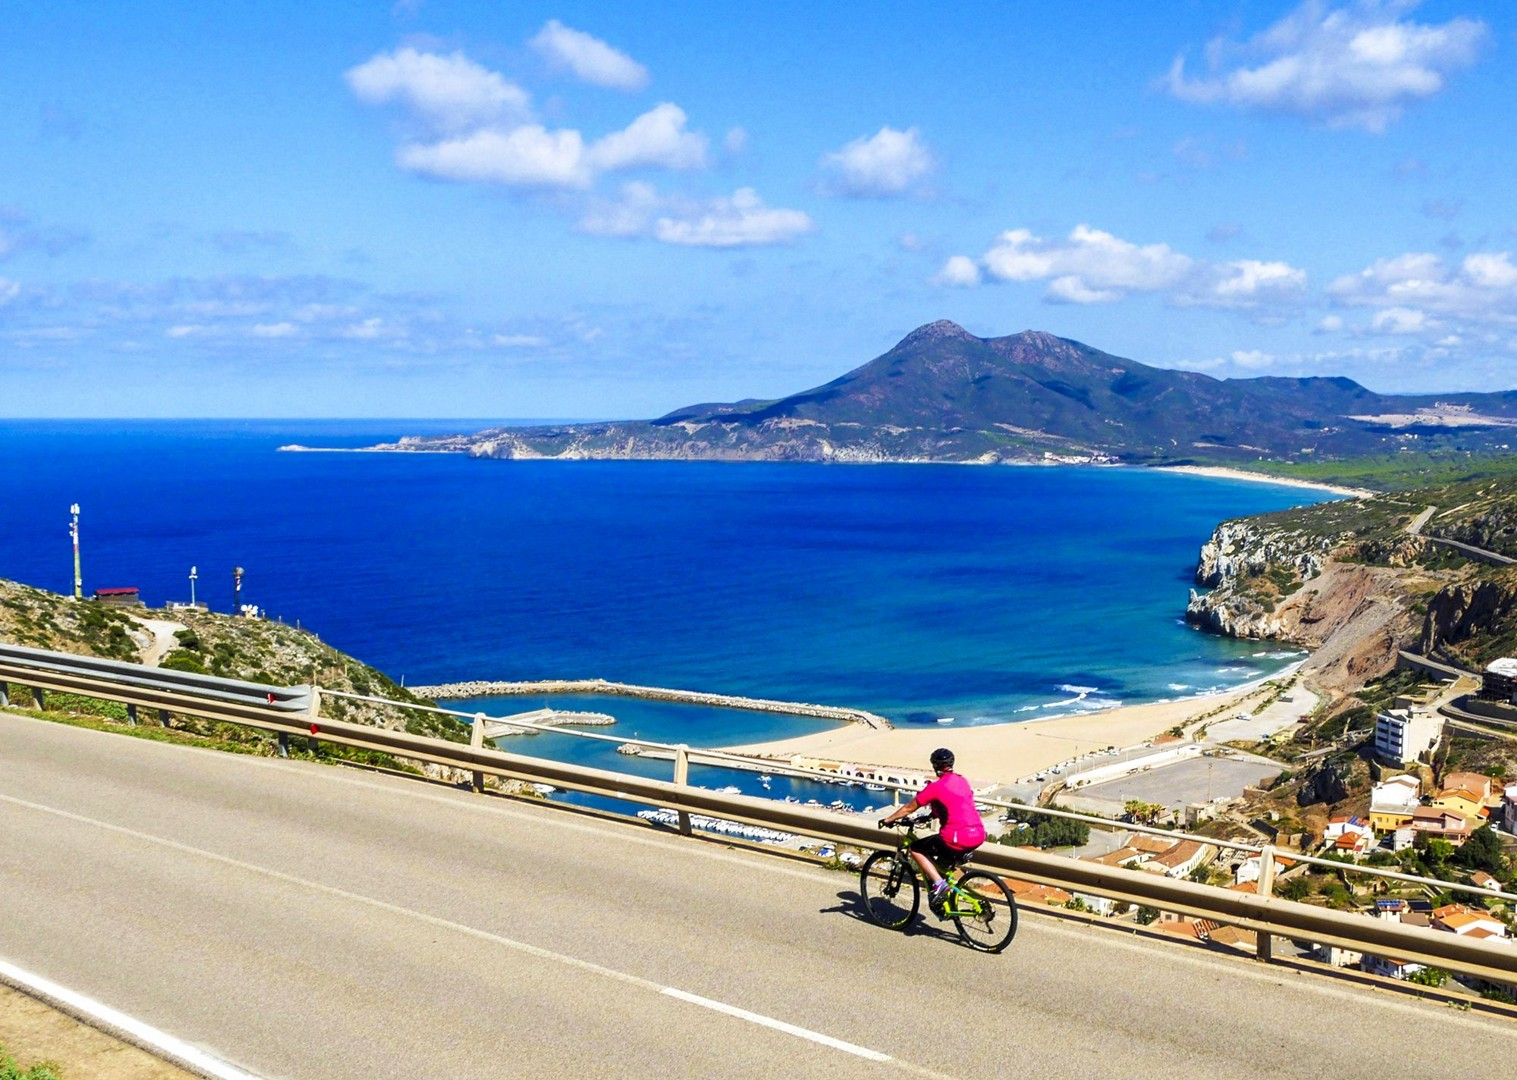 cycling-self-guided-trip-in-sardinia-italy.jpg - Italy - Sardinia - Island Flavours - Self-Guided Leisure Cycling Holiday - Leisure Cycling